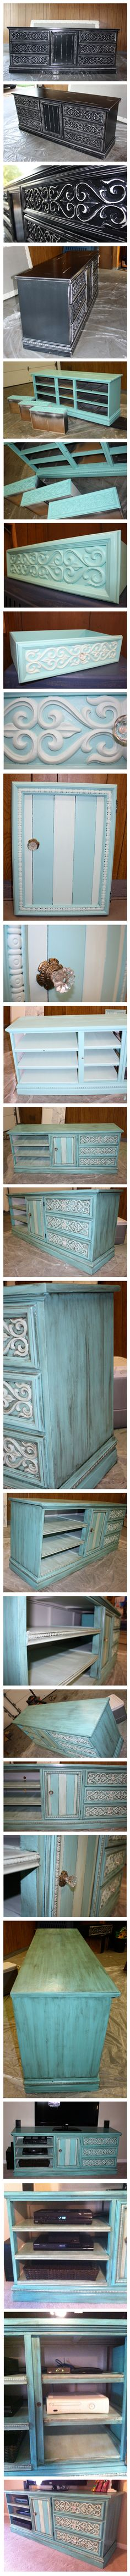 Repurpose a dresser to be an entertainment center! From start to finish!